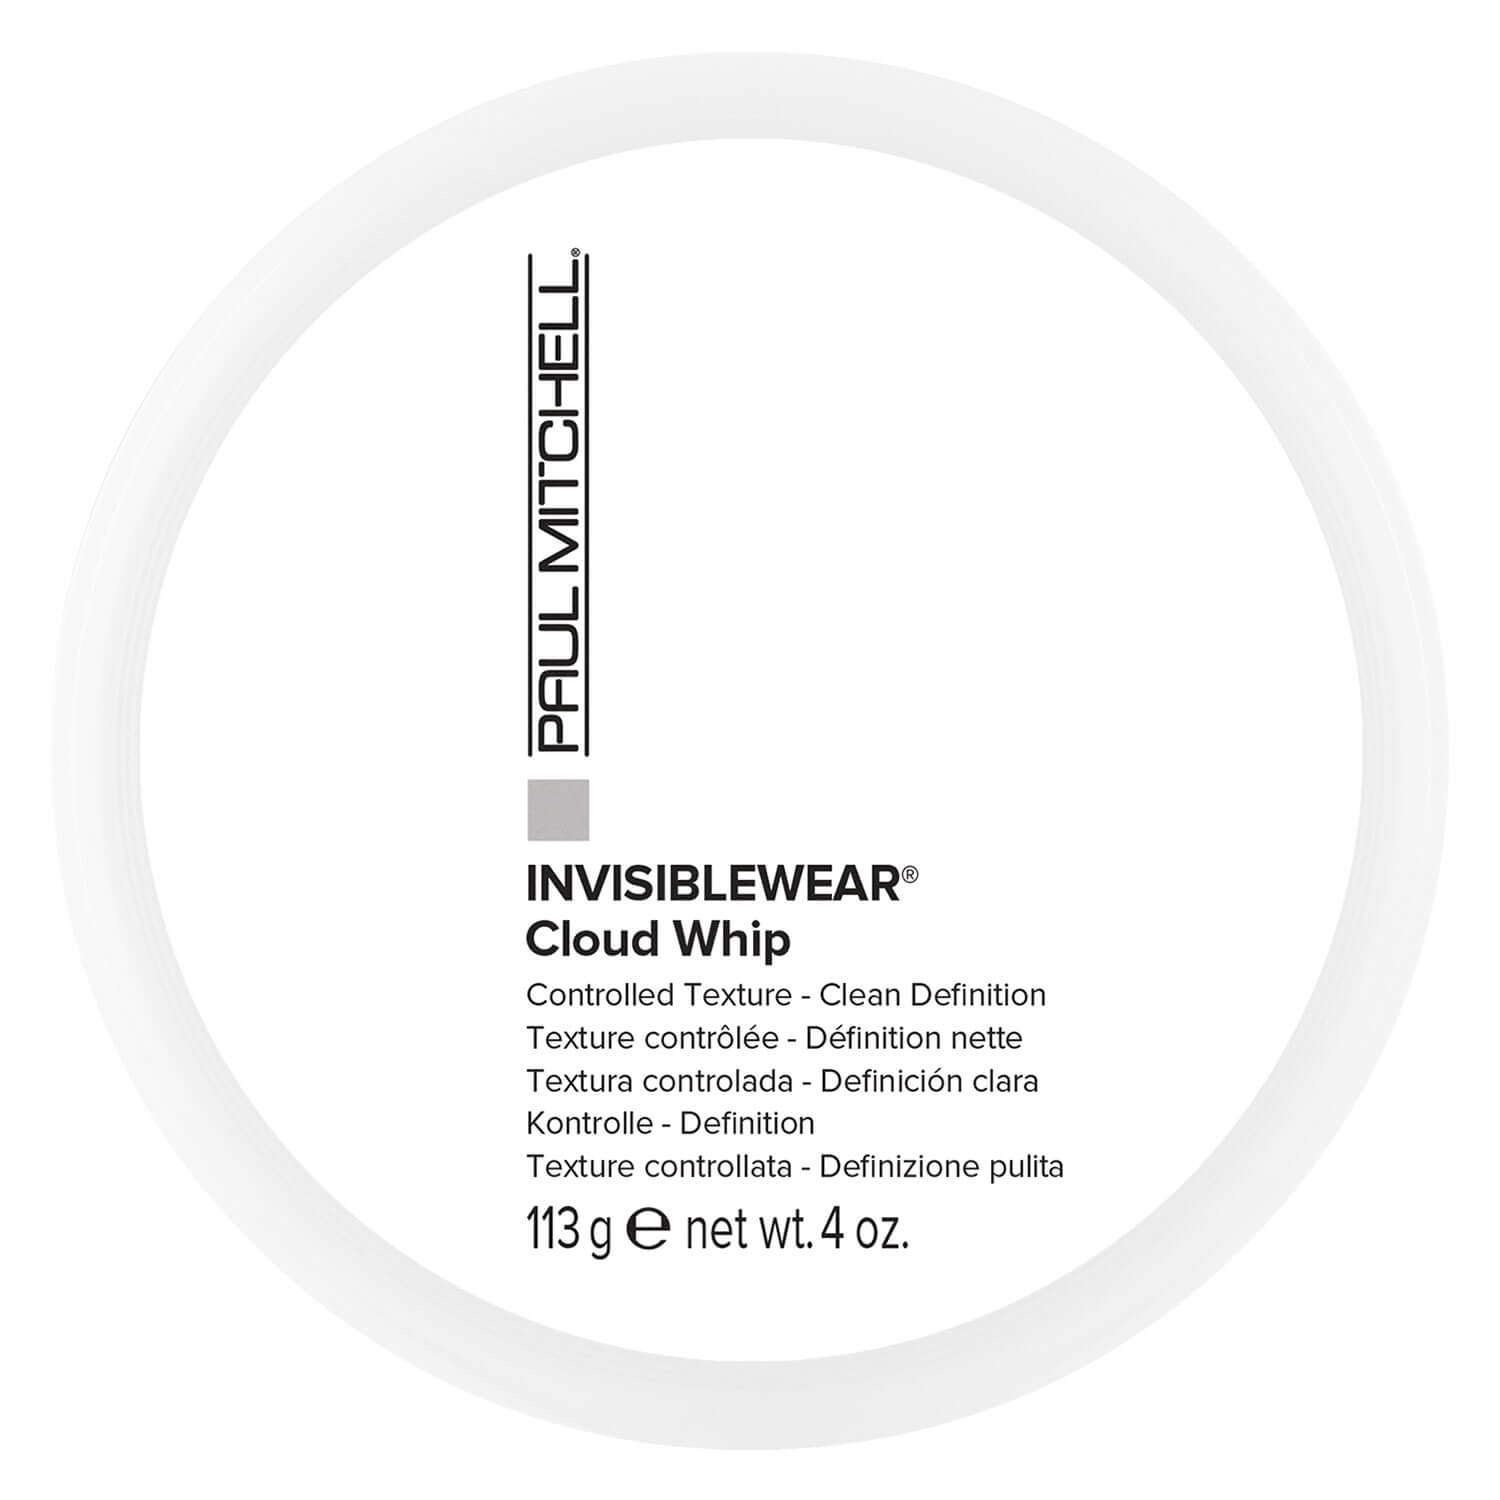 Invisiblewear - Cloud Whip